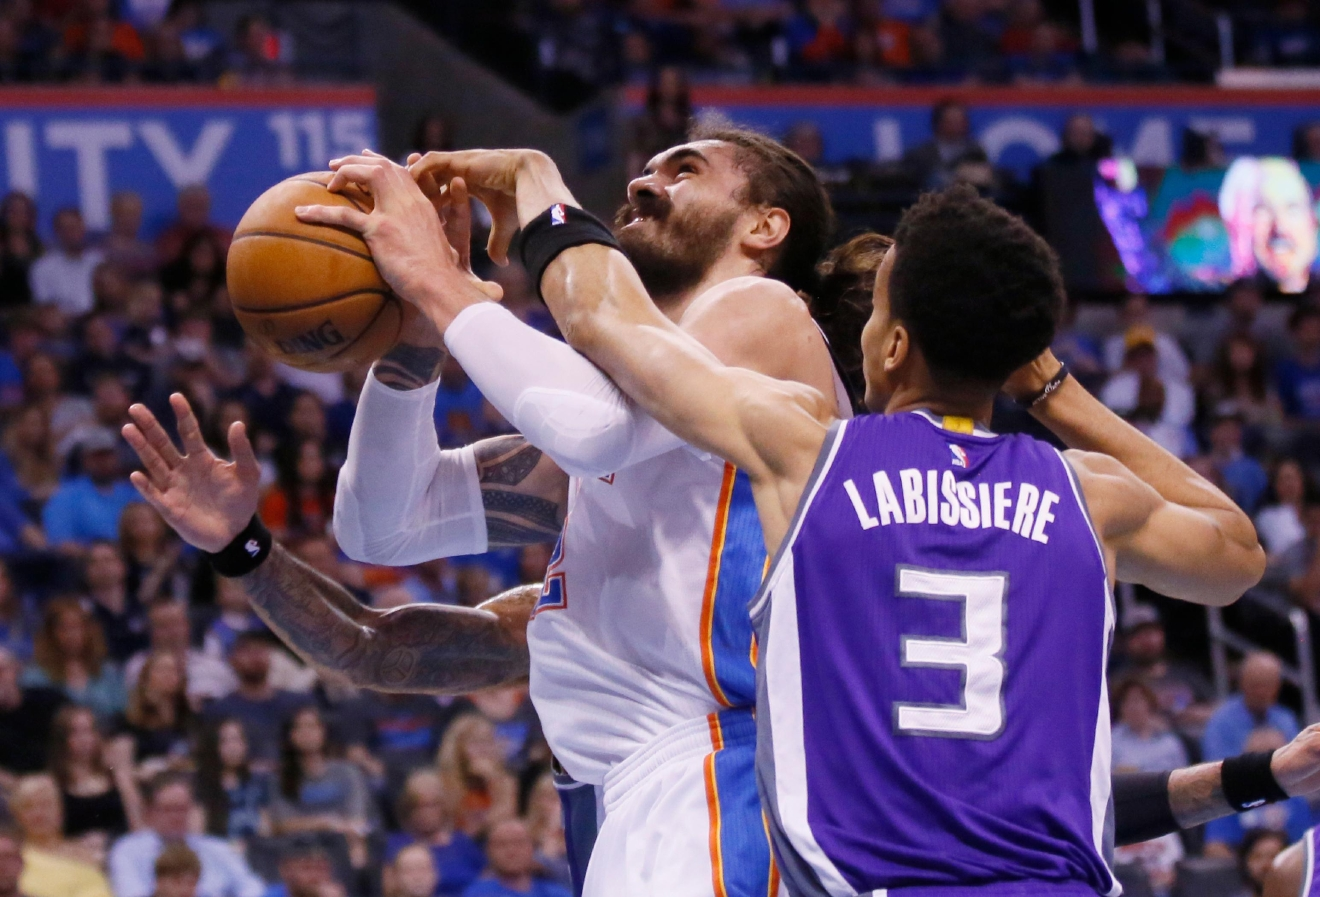 Oklahoma City Thunder center Steven Adams, left, is fouled by Sacramento Kings forward Skal Labissiere (3) in the first quarter of an NBA basketball game in Oklahoma City, Saturday, March 18, 2017. (AP Photo/Sue Ogrocki)